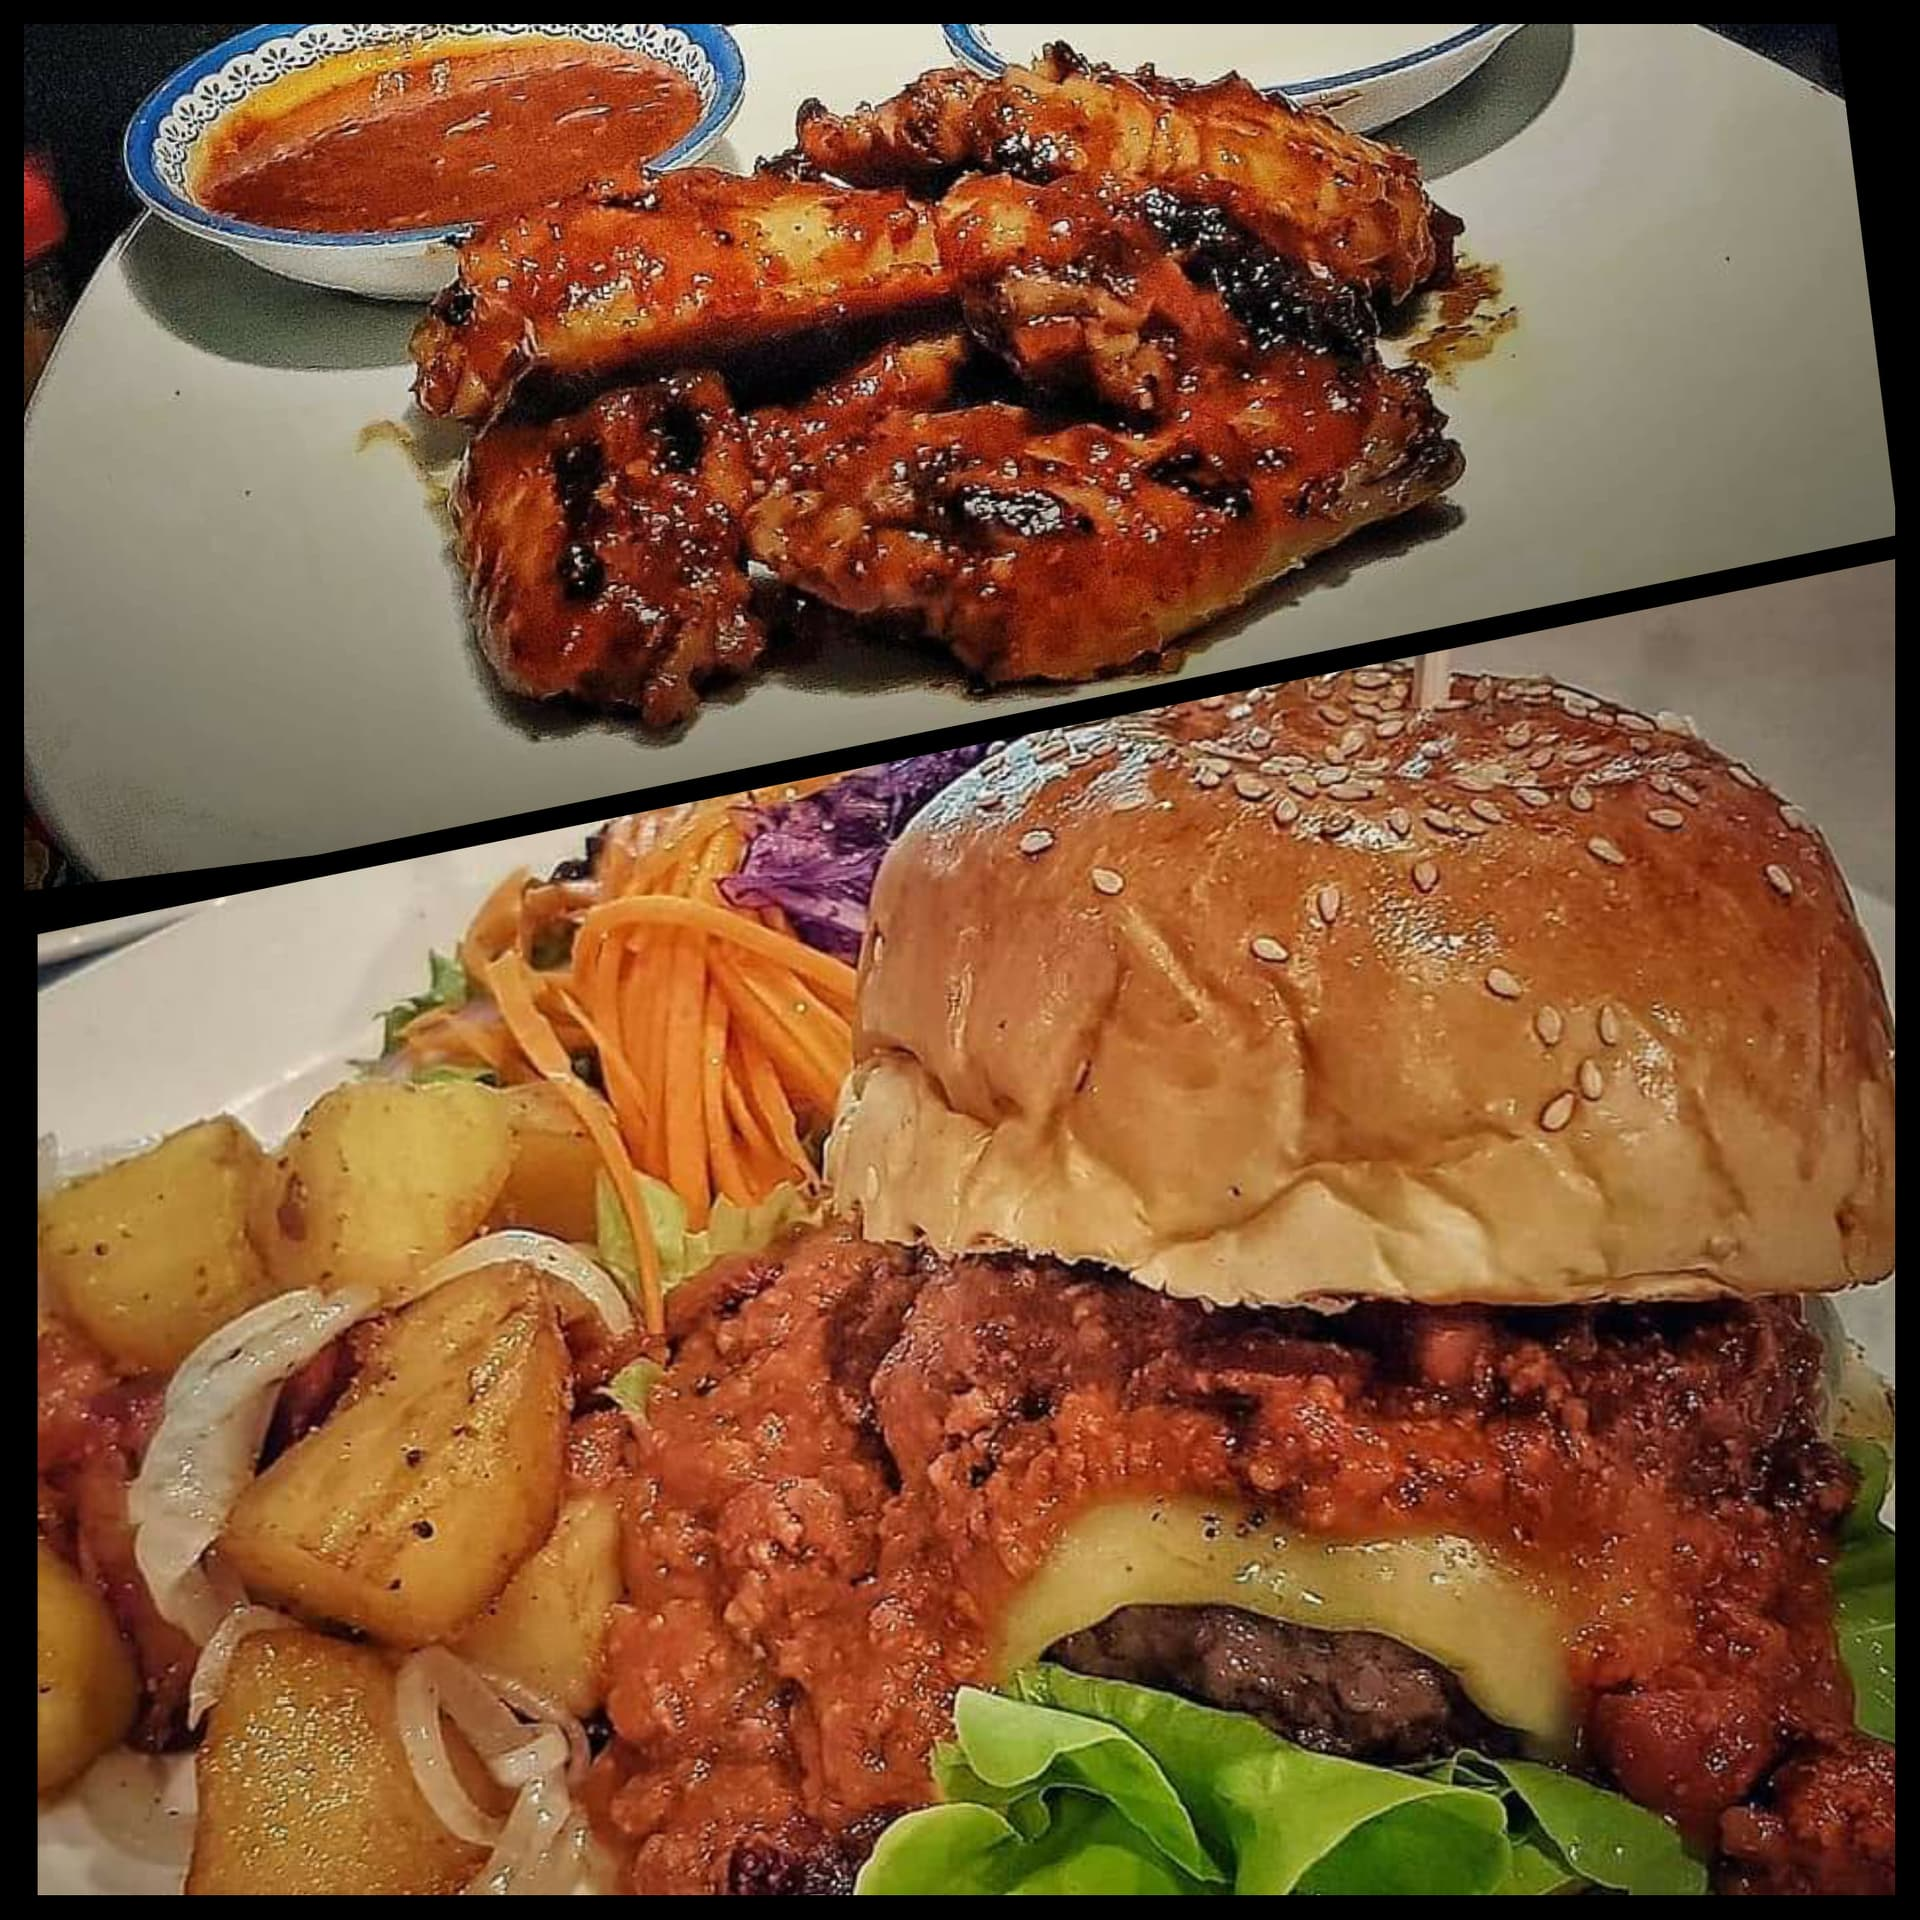 250g Chili-Cheese Burger Inc Sides & BBQ Chicken Wings Deal!